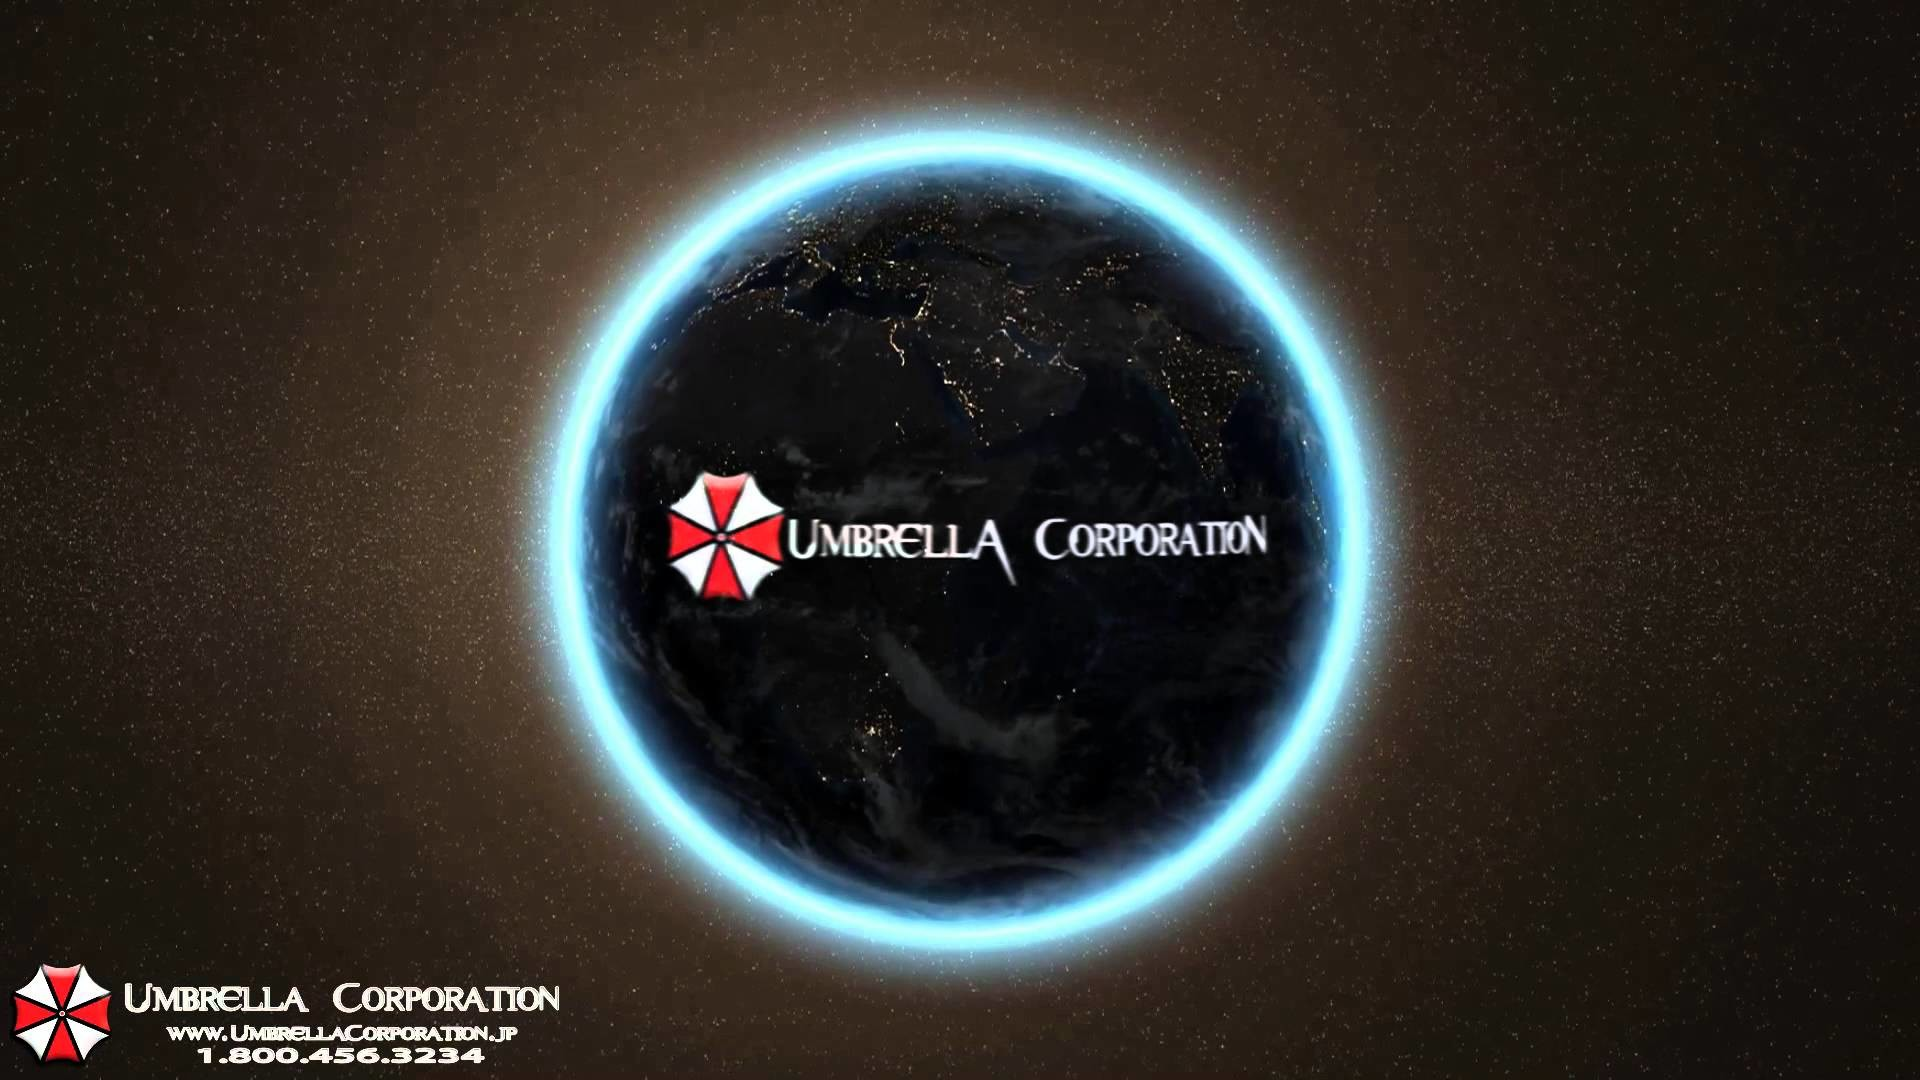 Cod Zombies Iphone Wallpaper Umbrella Corporation Background 67 Images